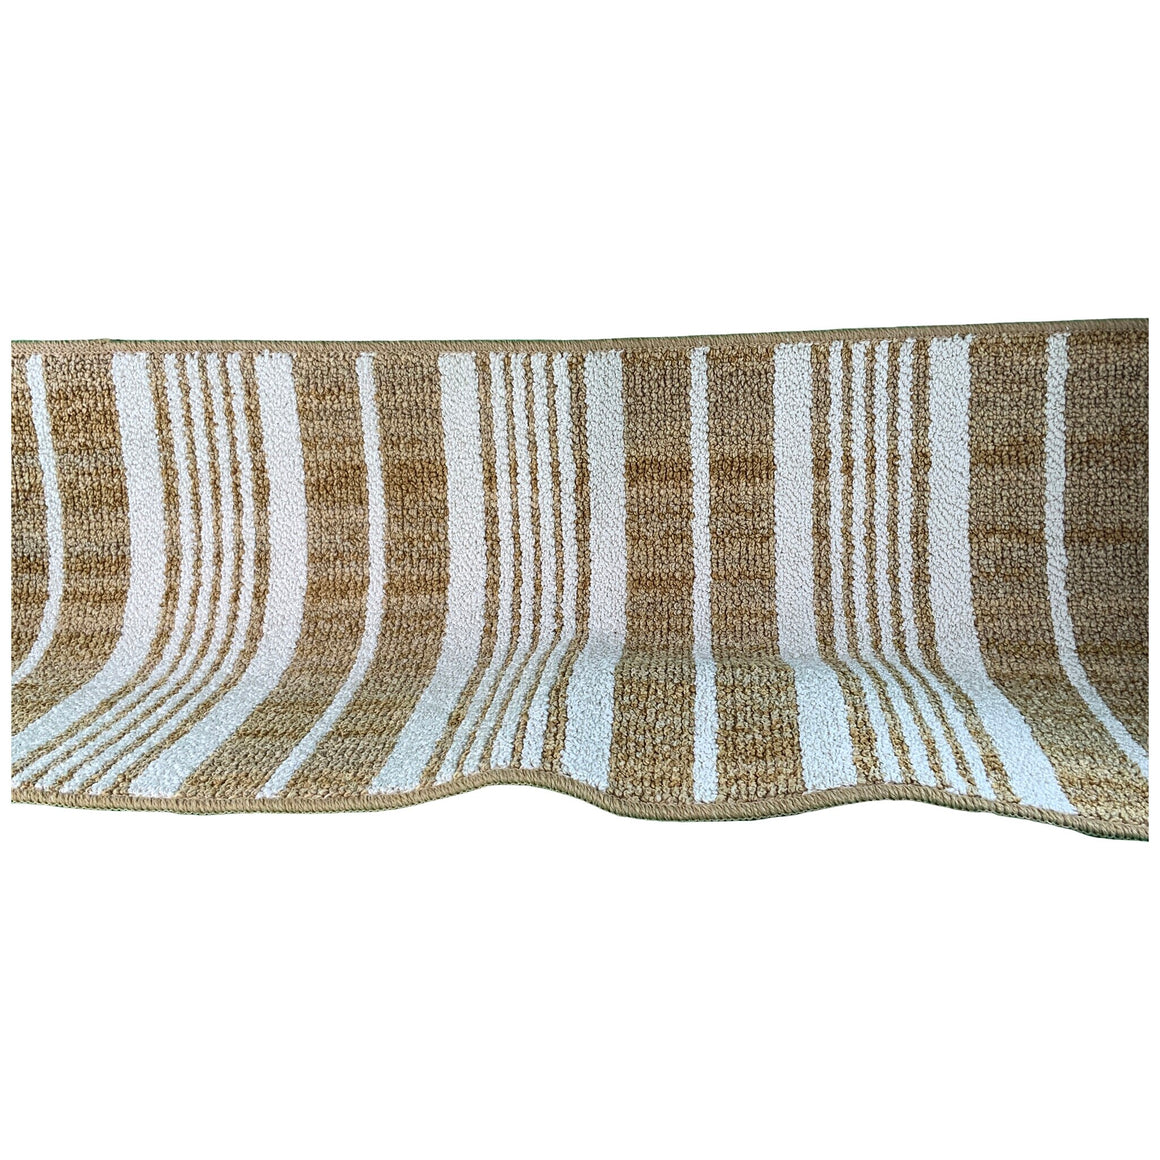 "2'6""X4' Stripe Tufted Accent Rugs Gold - Threshold"